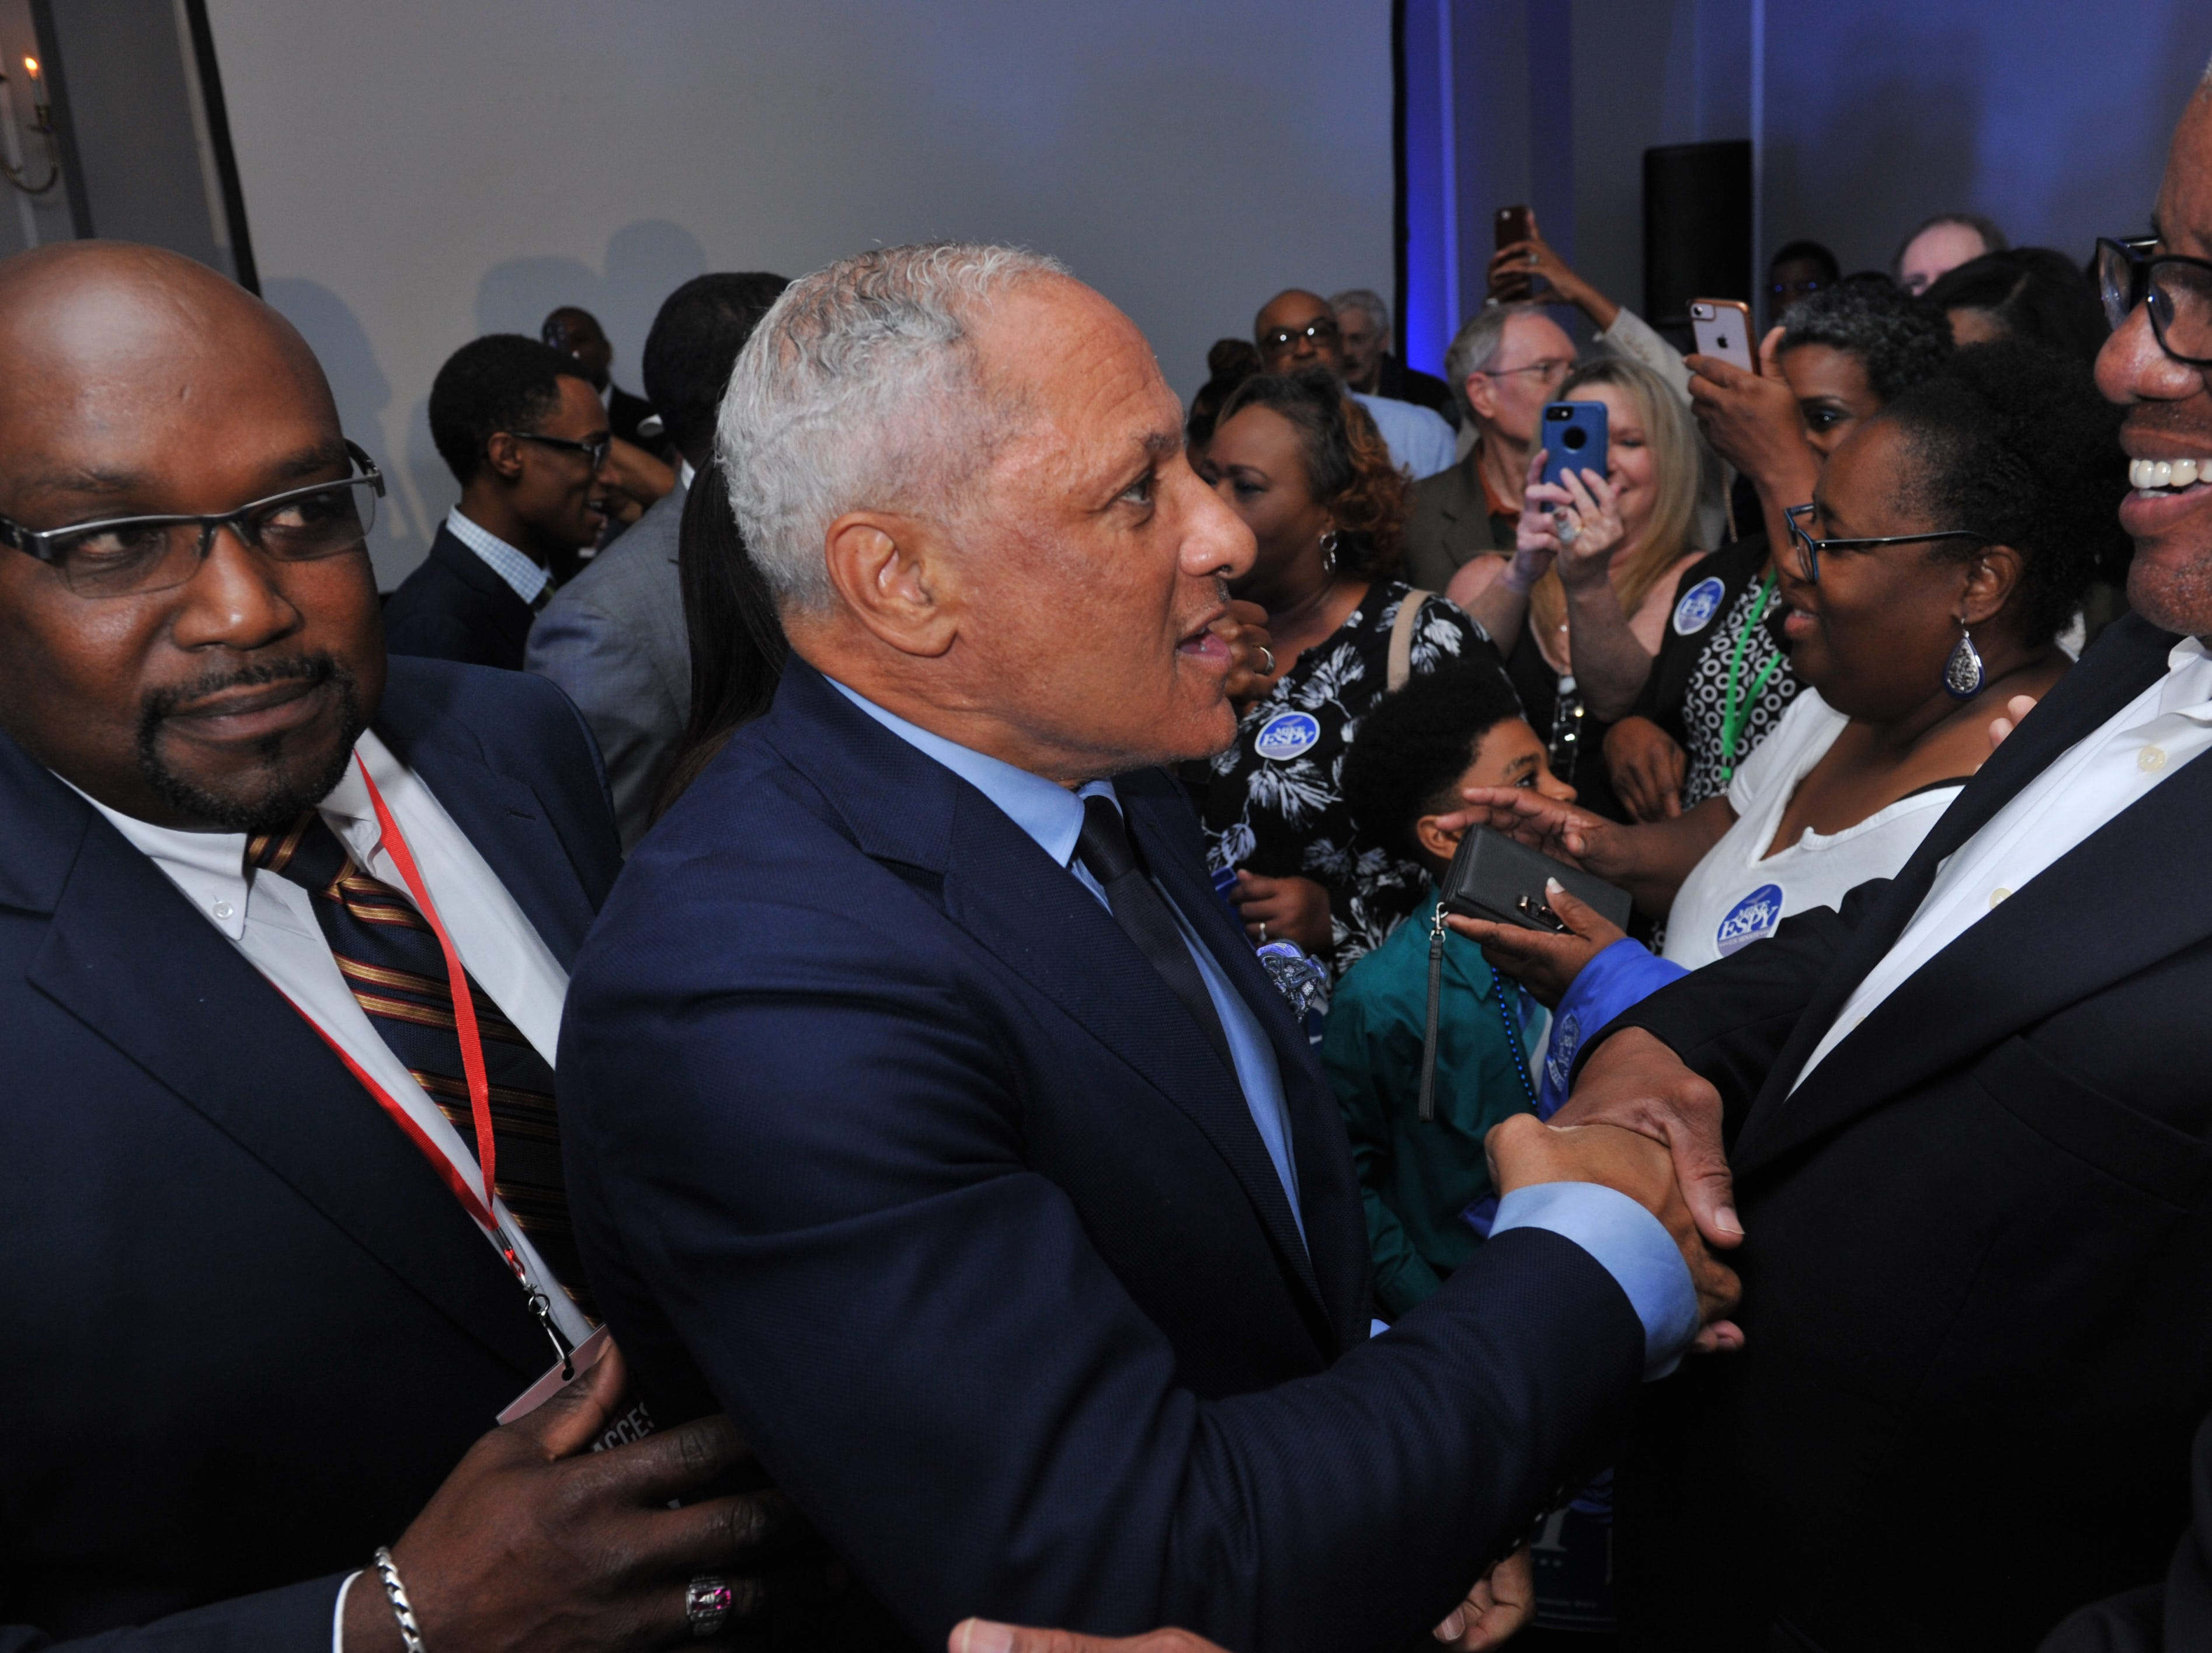 Democratic Senate candidate Mike Espy, center, makes his way through the crowd after announcing to an awaiting crowd at his election night party at the Jackson Hilton on Tuesday, Nov. 6, 2018, that a runoff against Republican opponent Cindy Hyde-Smith is in the future. The runoff is set for Nov. 27, 2019.